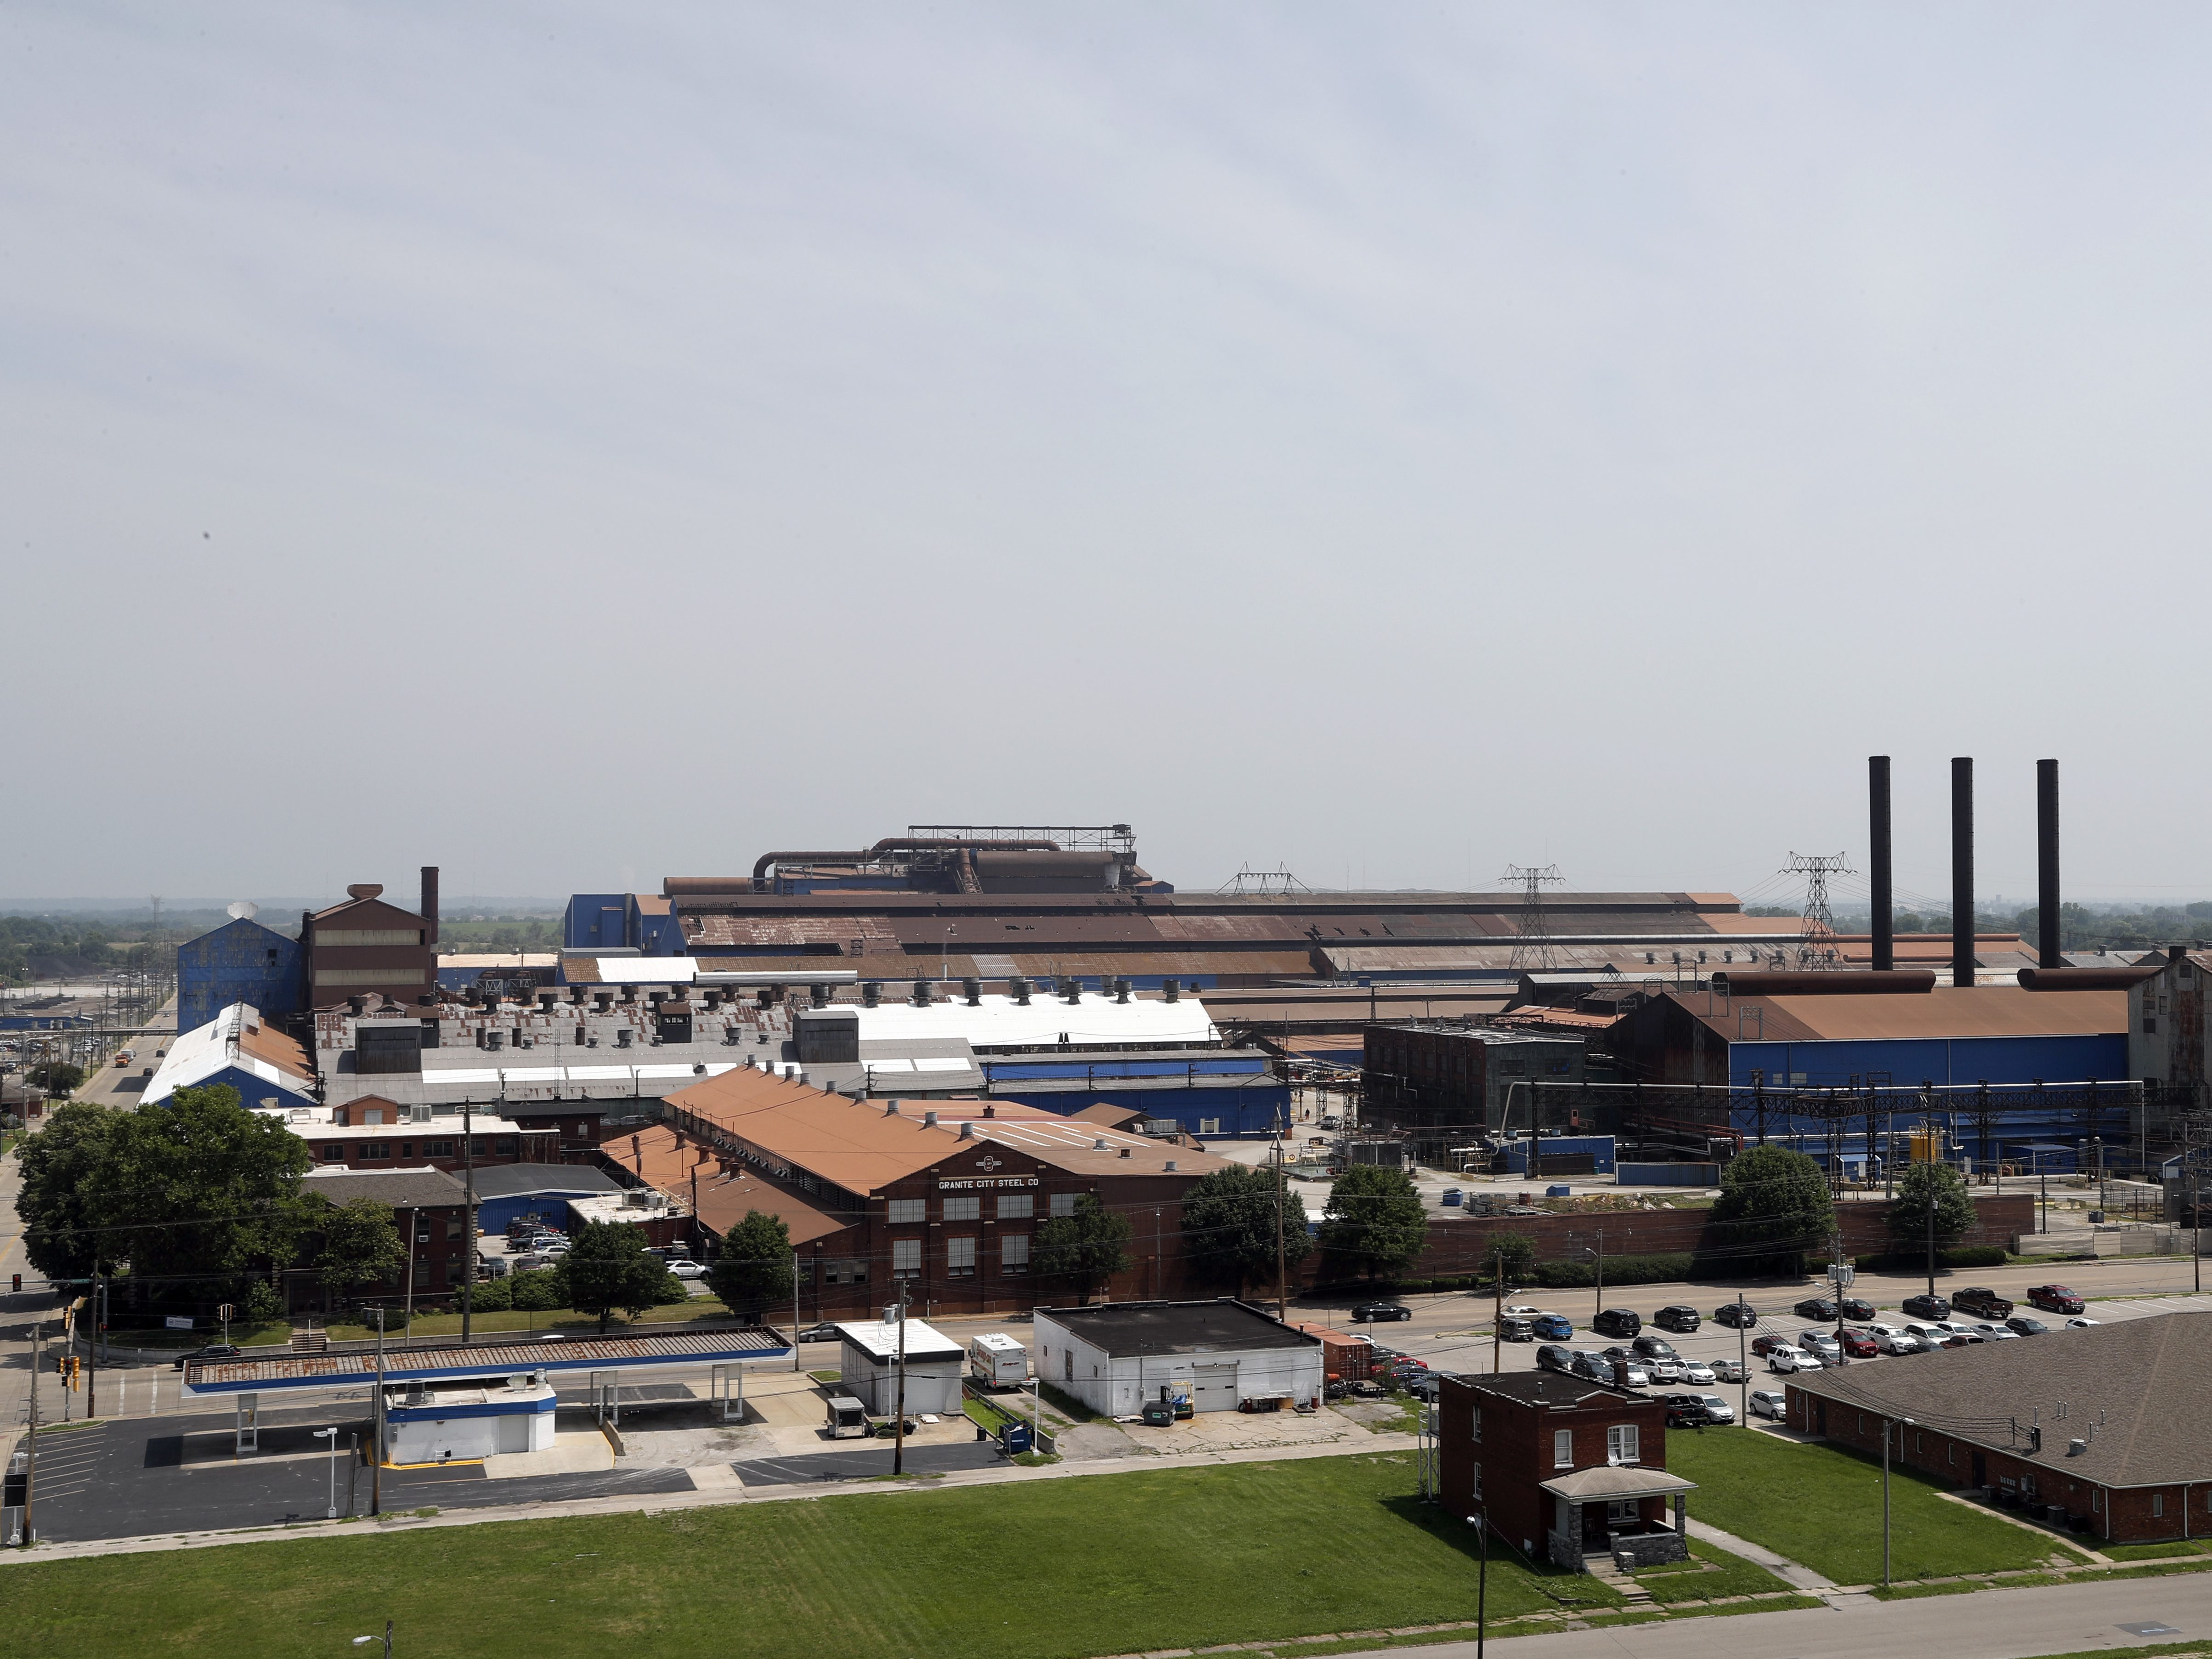 The U.S. Steel Granite City Works facility, after being shut down for roughly two years, recently restarted an idle blast furnace. | AP Photo/Jeff Roberson